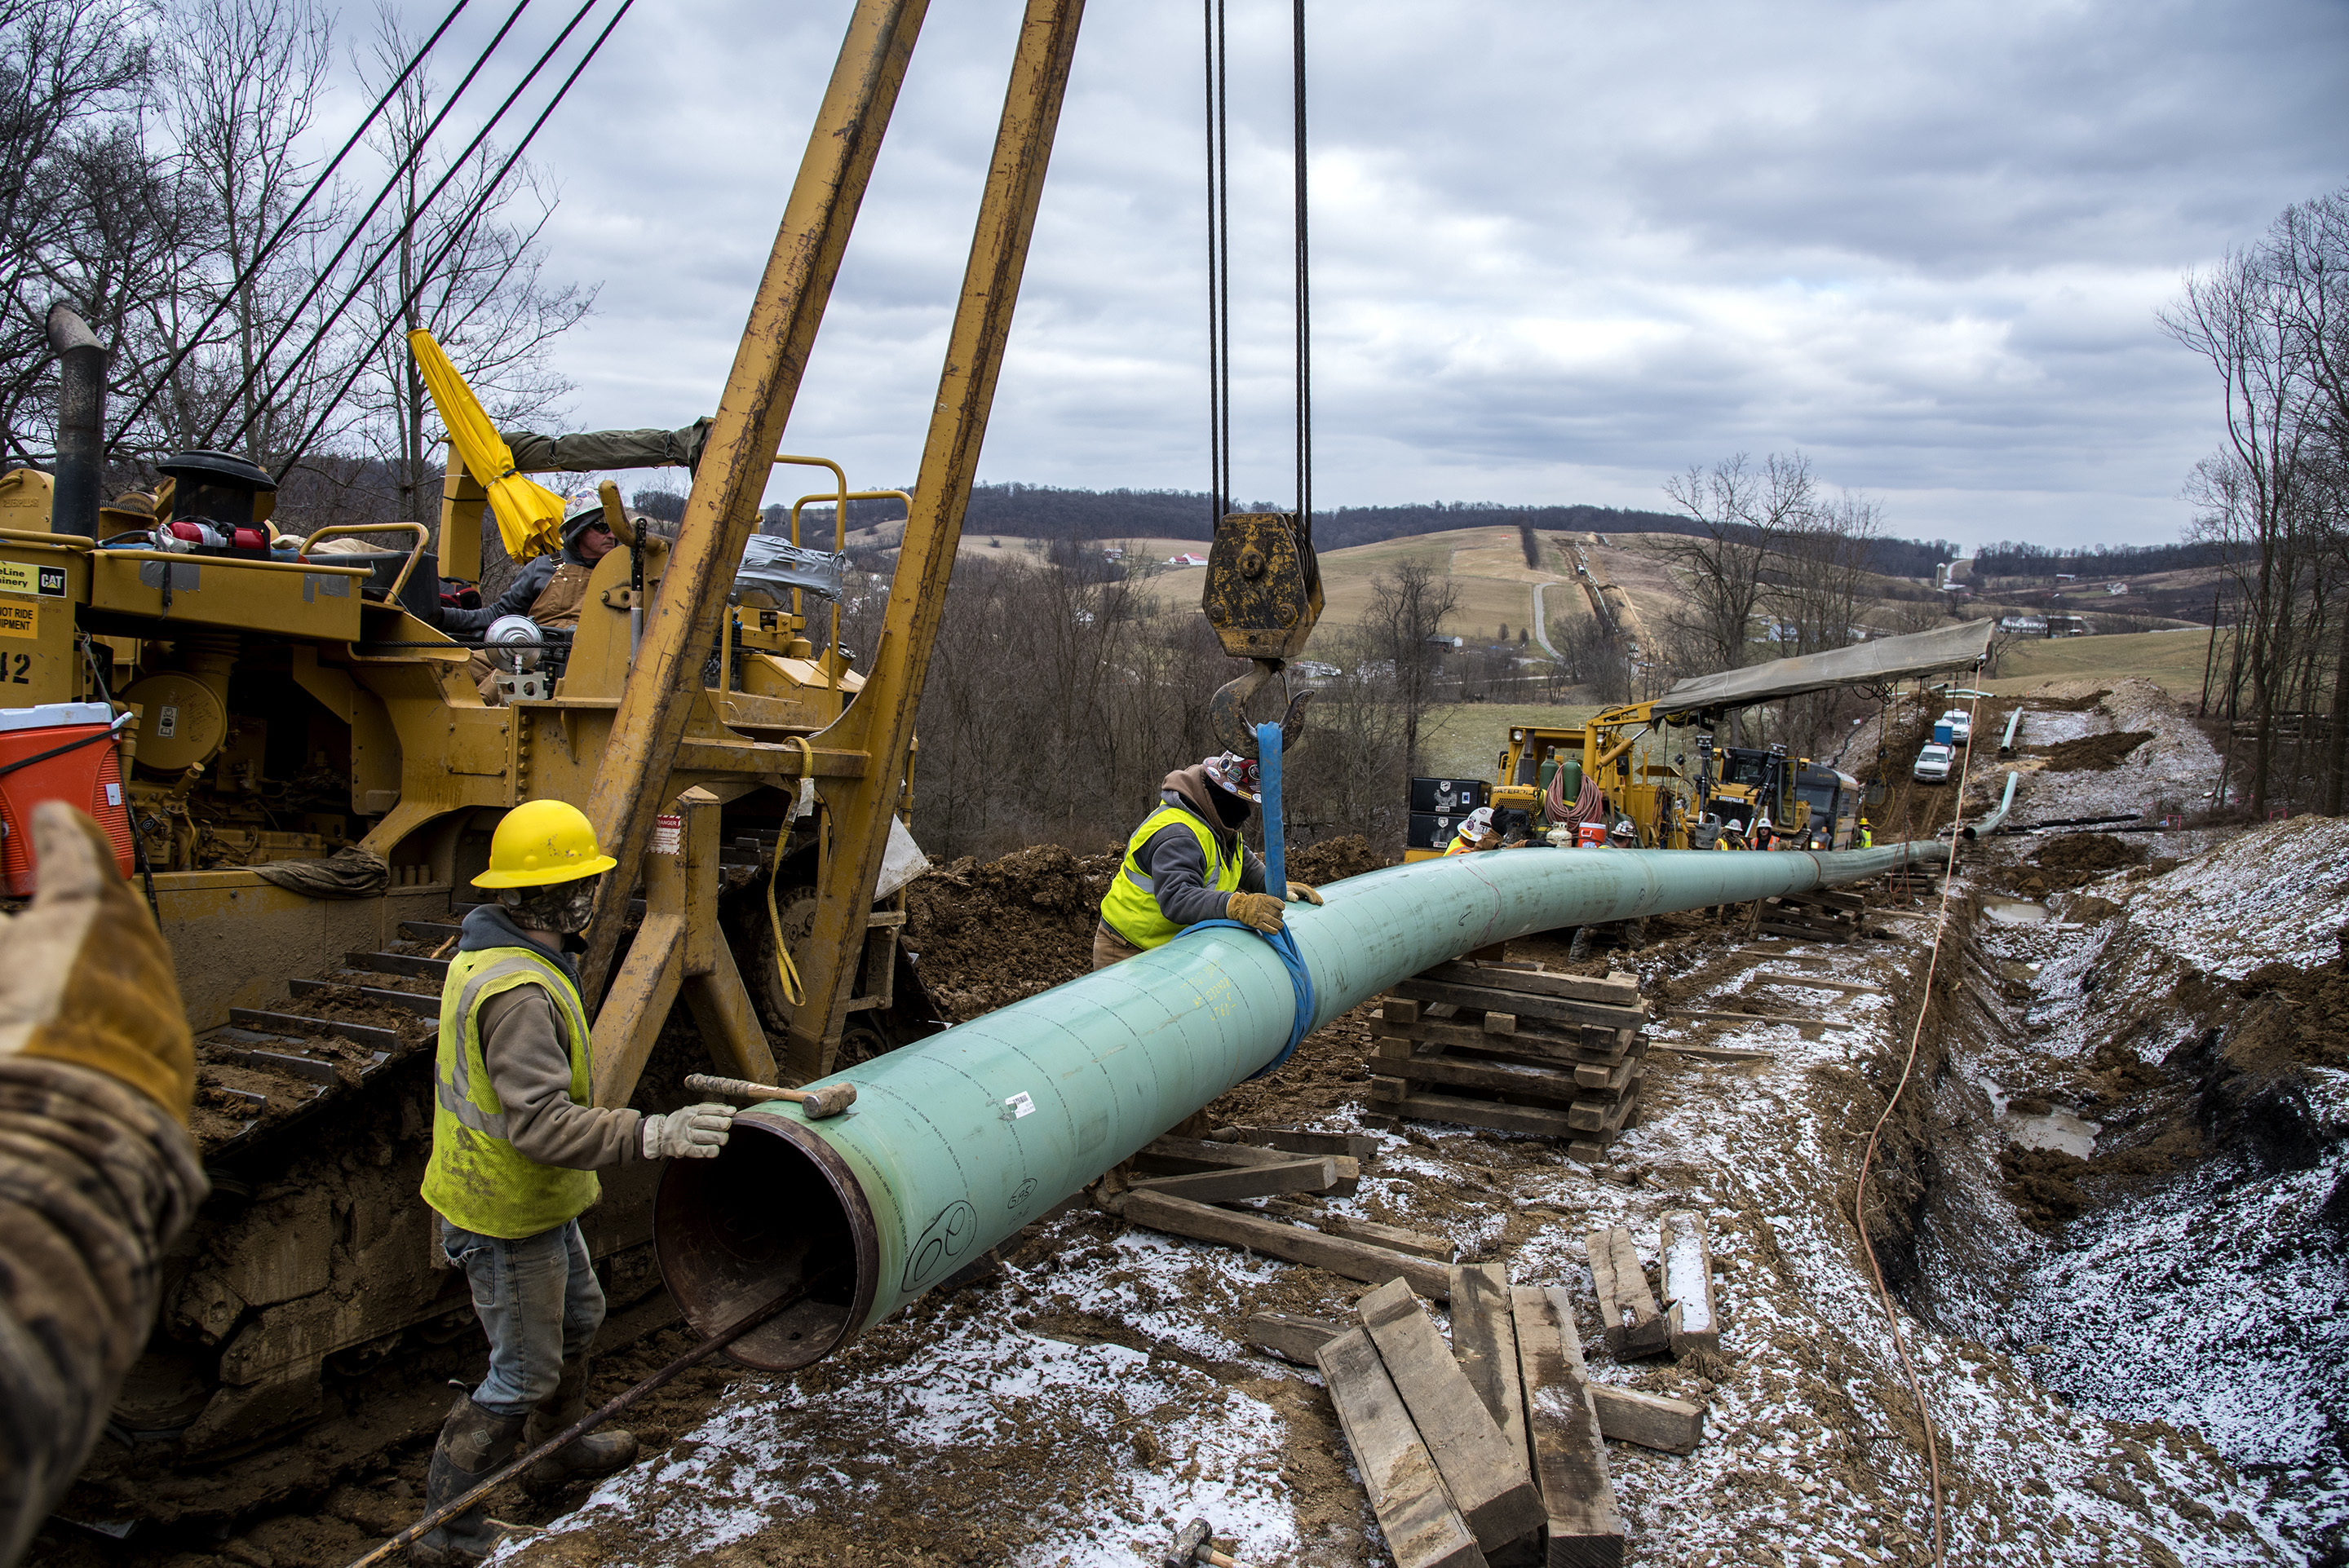 The Mariner East 2 pipeline under construction last year in Washington County, Pa.